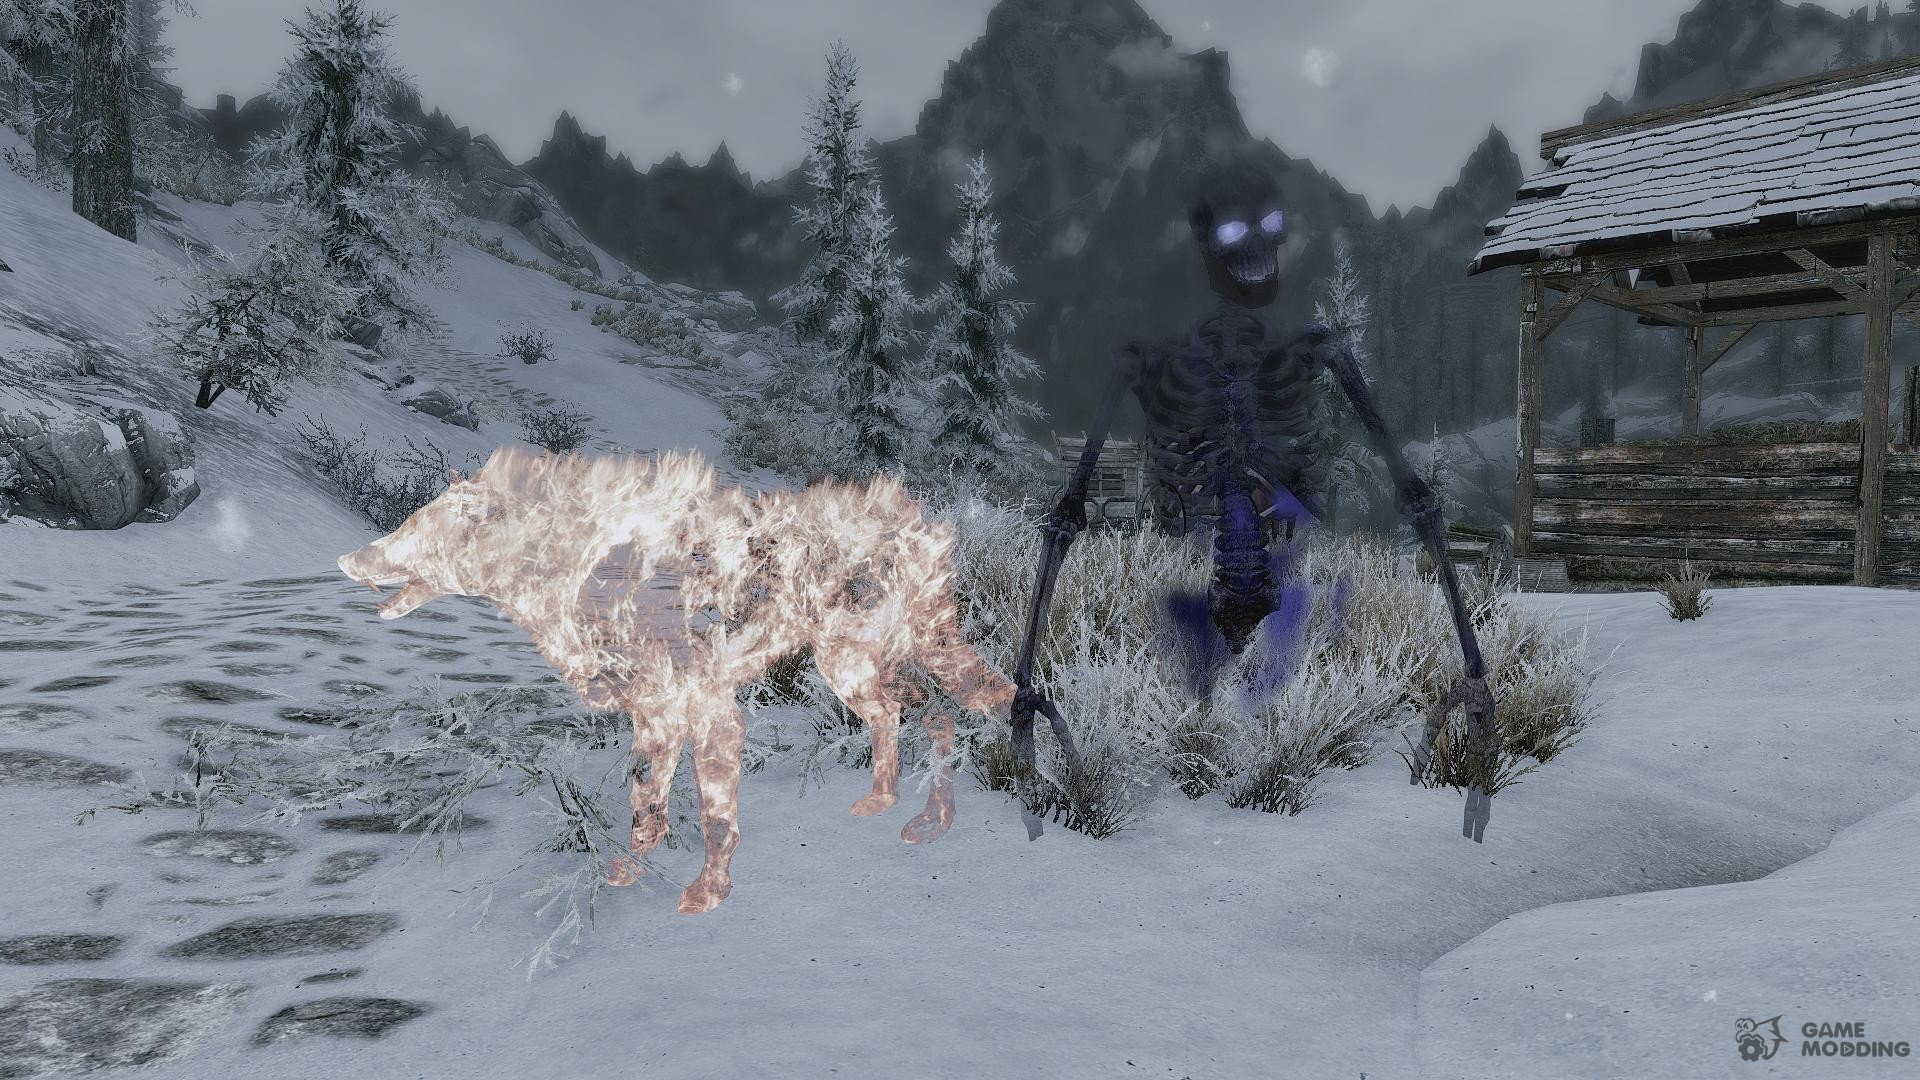 Summon Creatures of the Hell - Mounts and Followers for TES V Skyrim rear-left